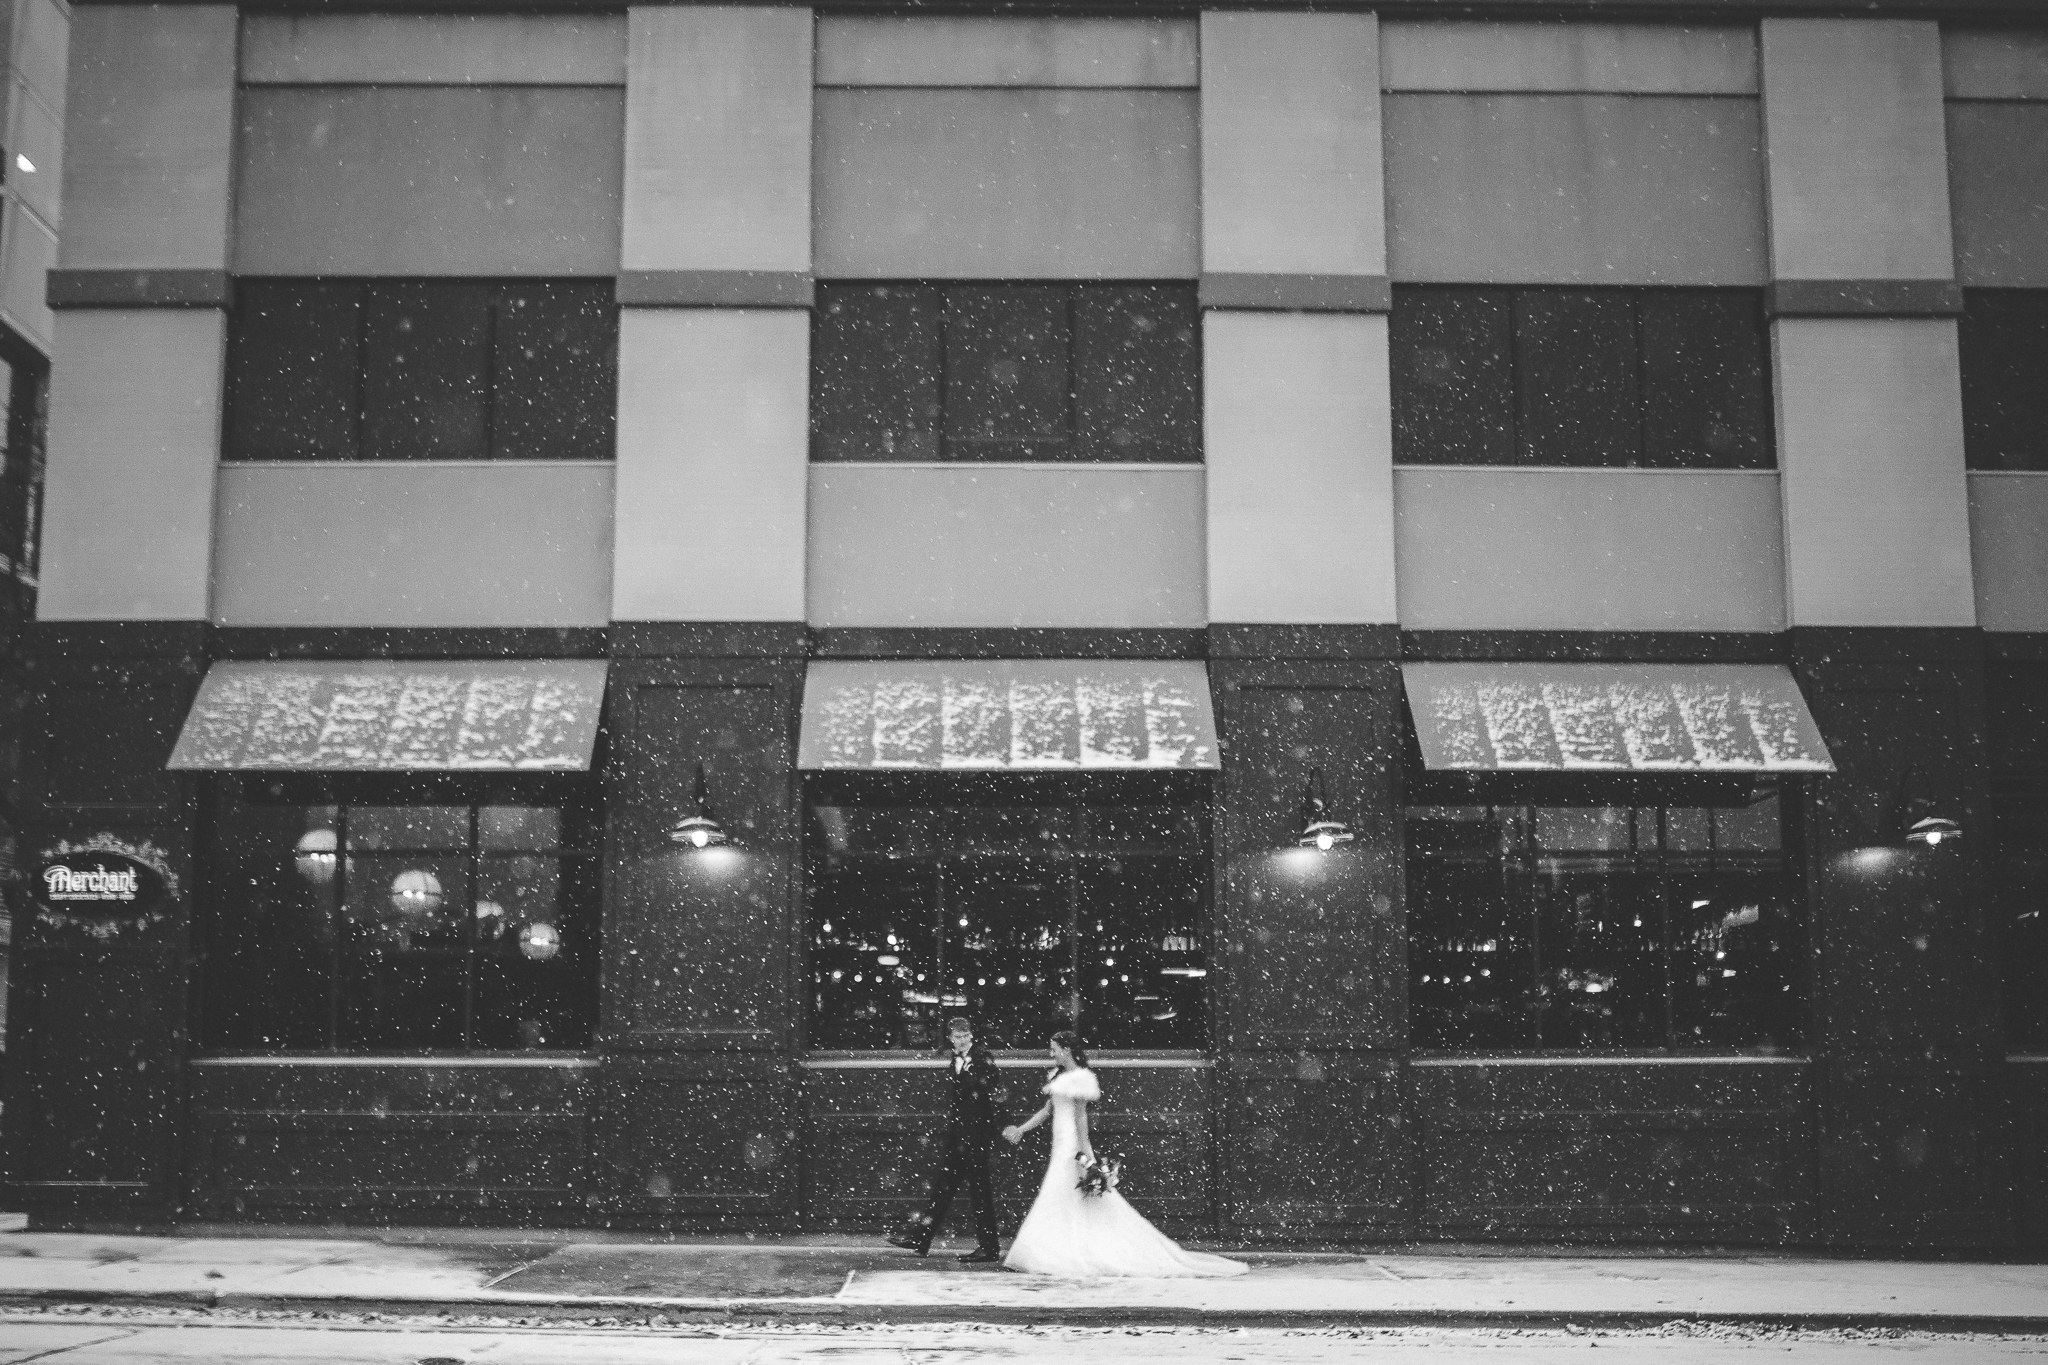 madison wisconsin winter wedding photographer-14.jpg